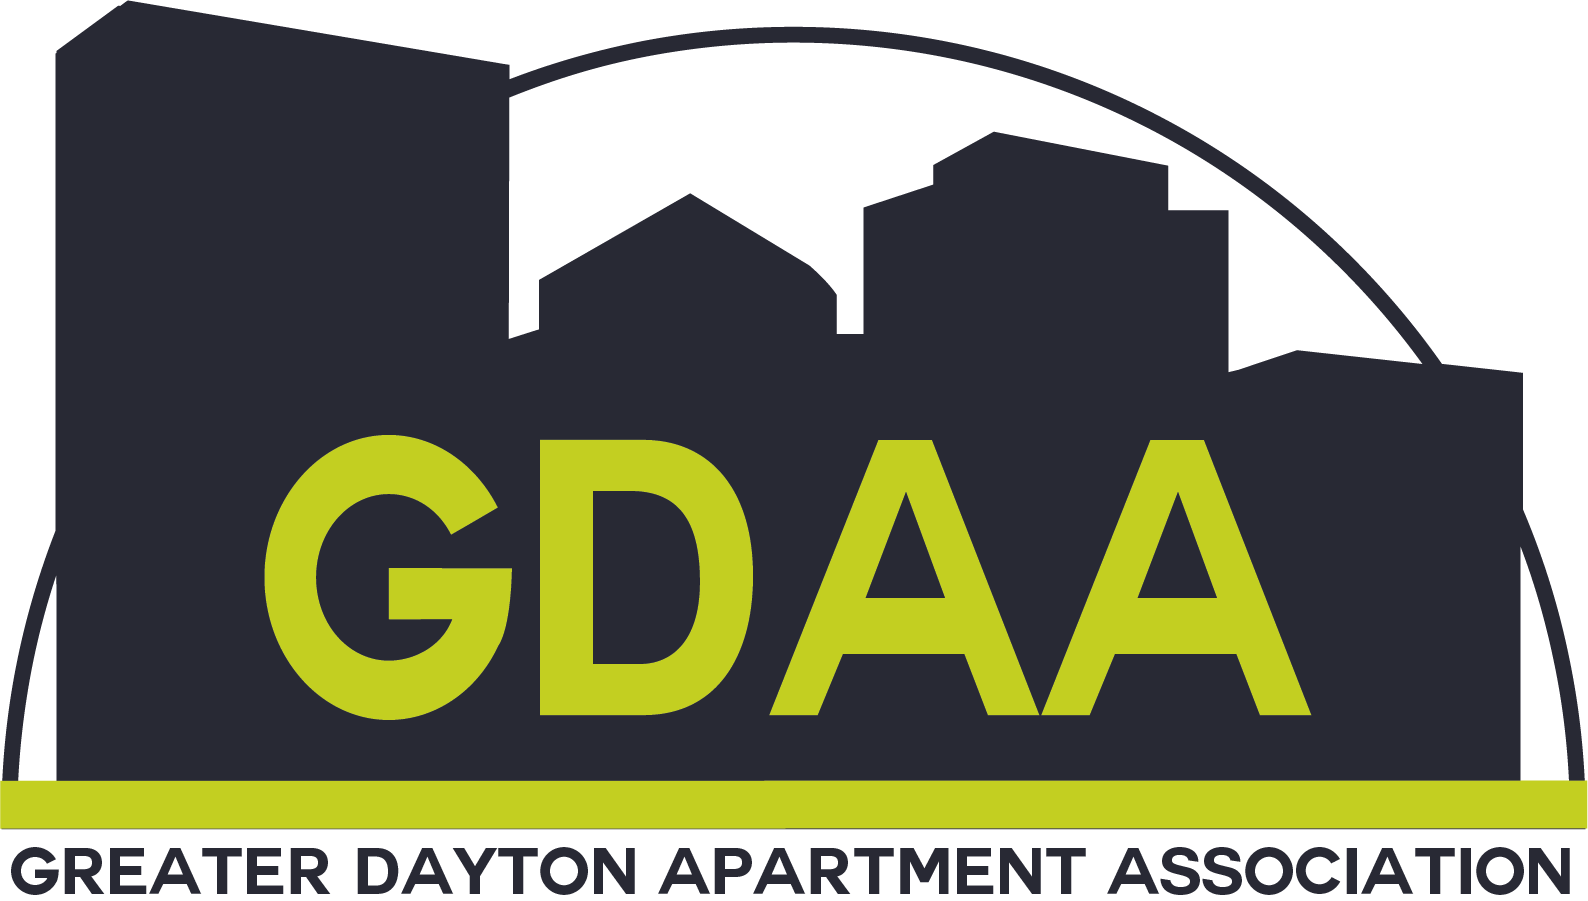 gdaa_final_green_gray_logo_2017_11_07